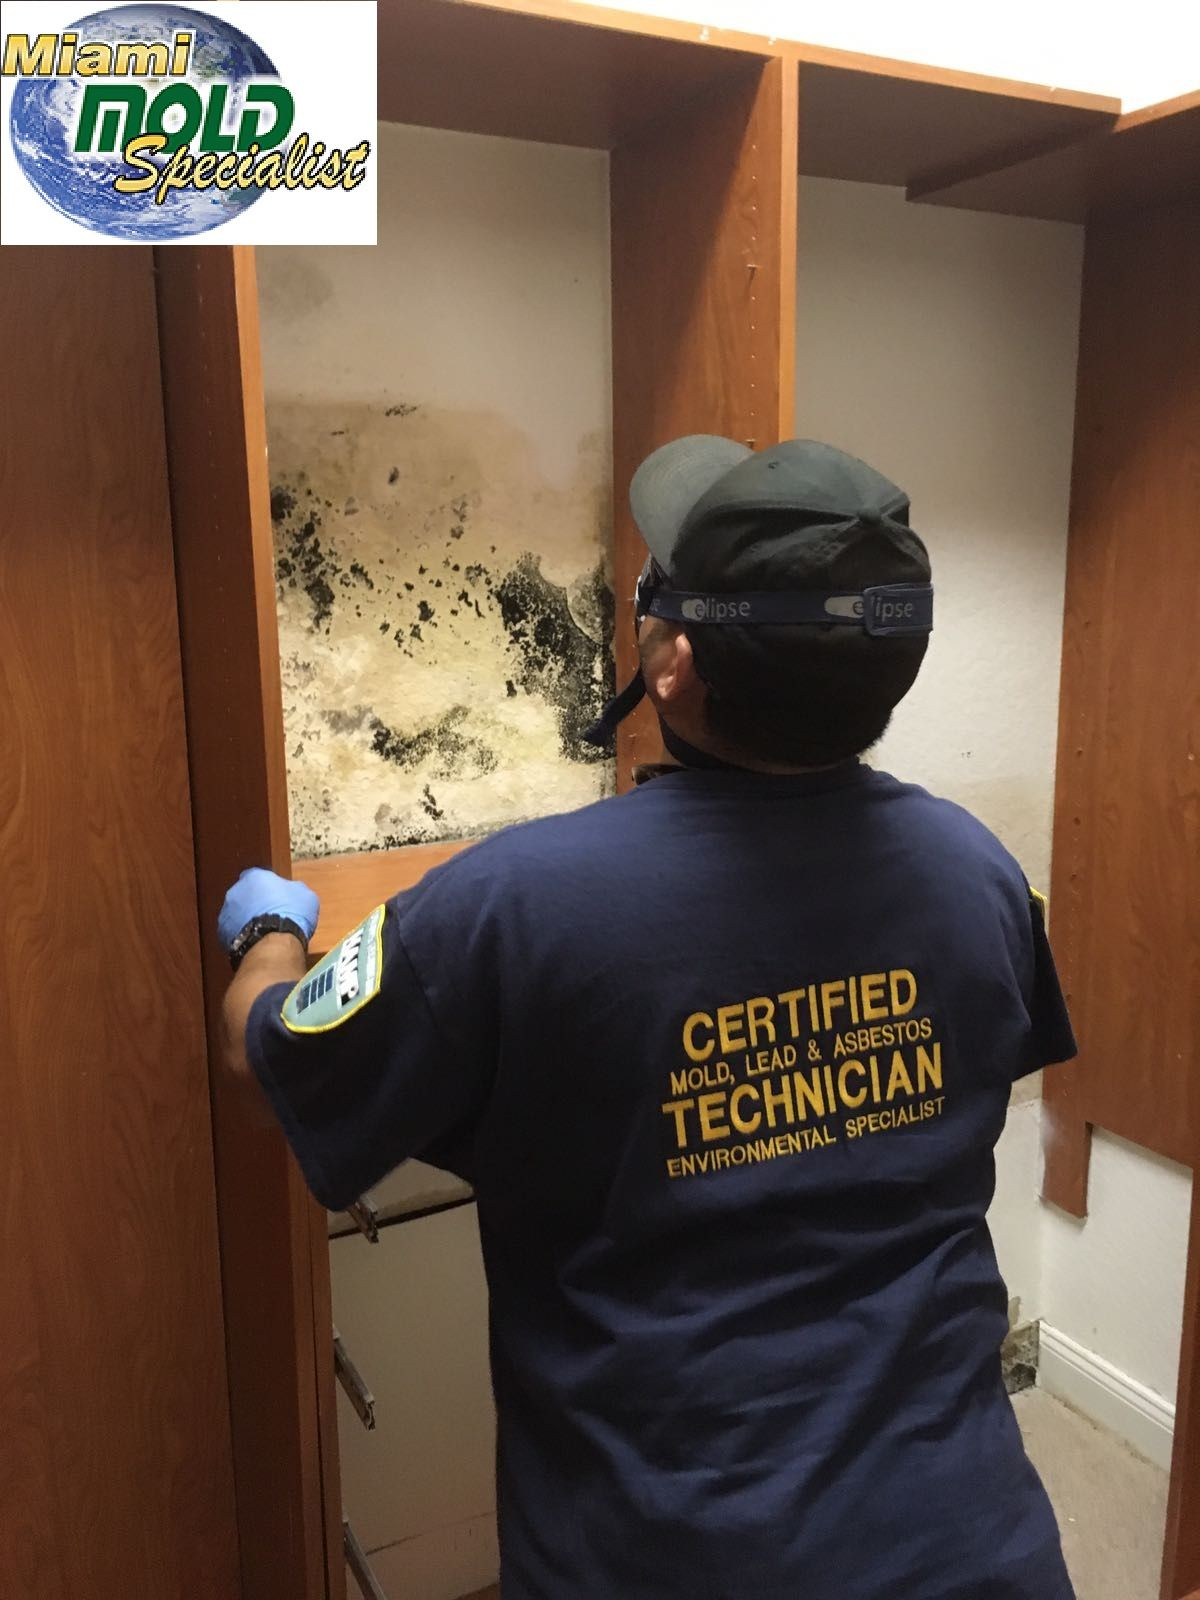 When You Need Help With Water Damage Fire Damage Mold And Mildew Removal Water Damage Restoration Carpe Fire Damage Remove Mould From Fabric Mildew Remover